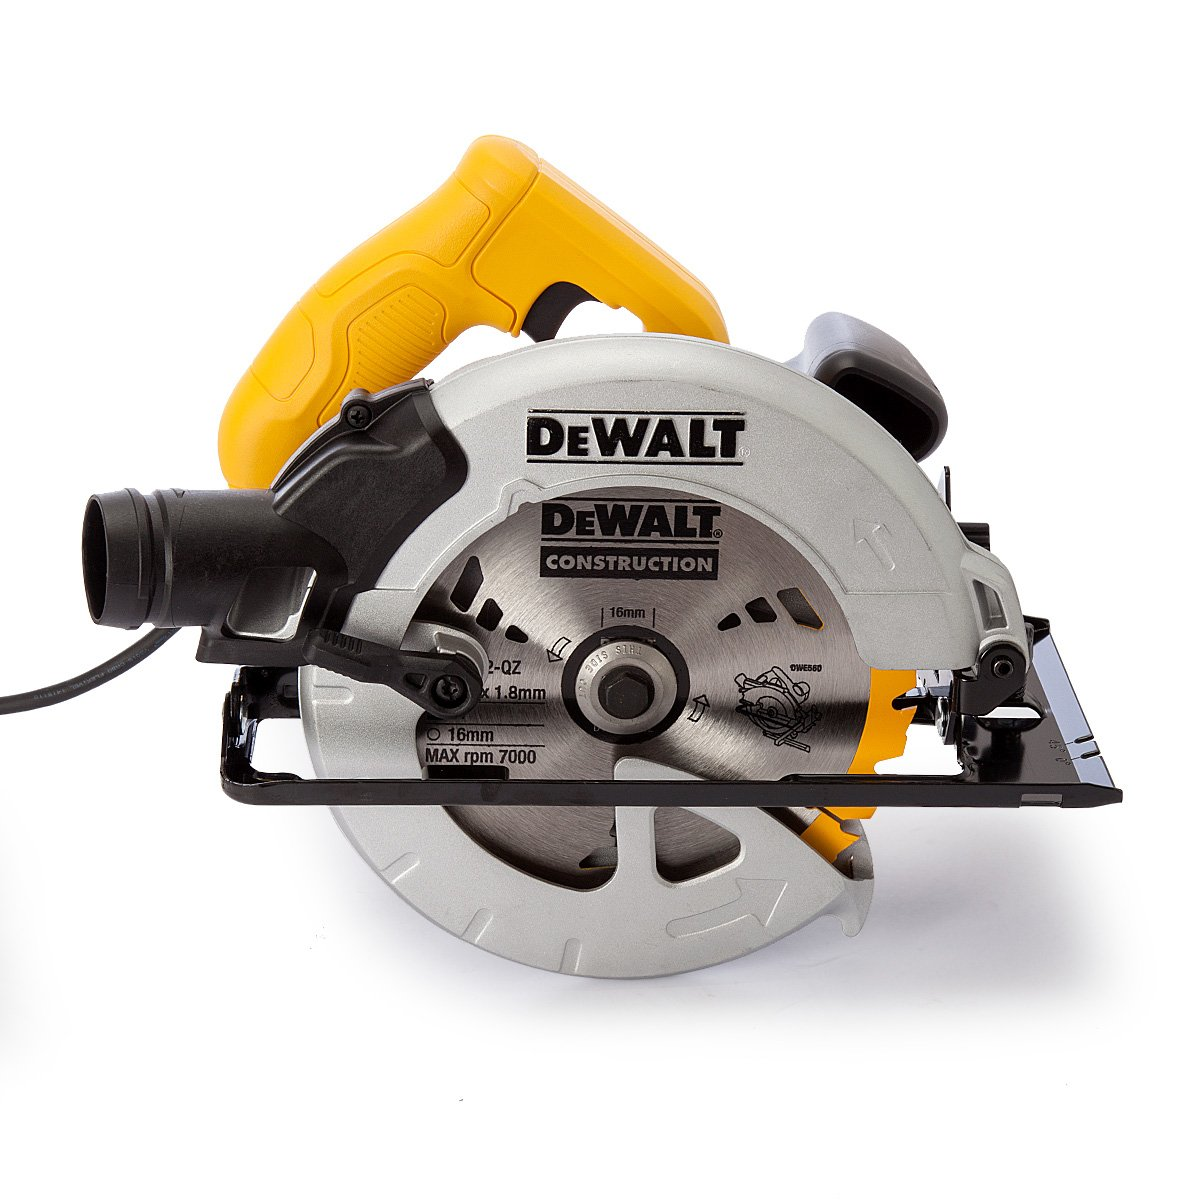 dewalt skil saw. dewalt 110v 184mm 65mm compact circular saw in kitbox: amazon.co.uk: diy \u0026 tools dewalt skil